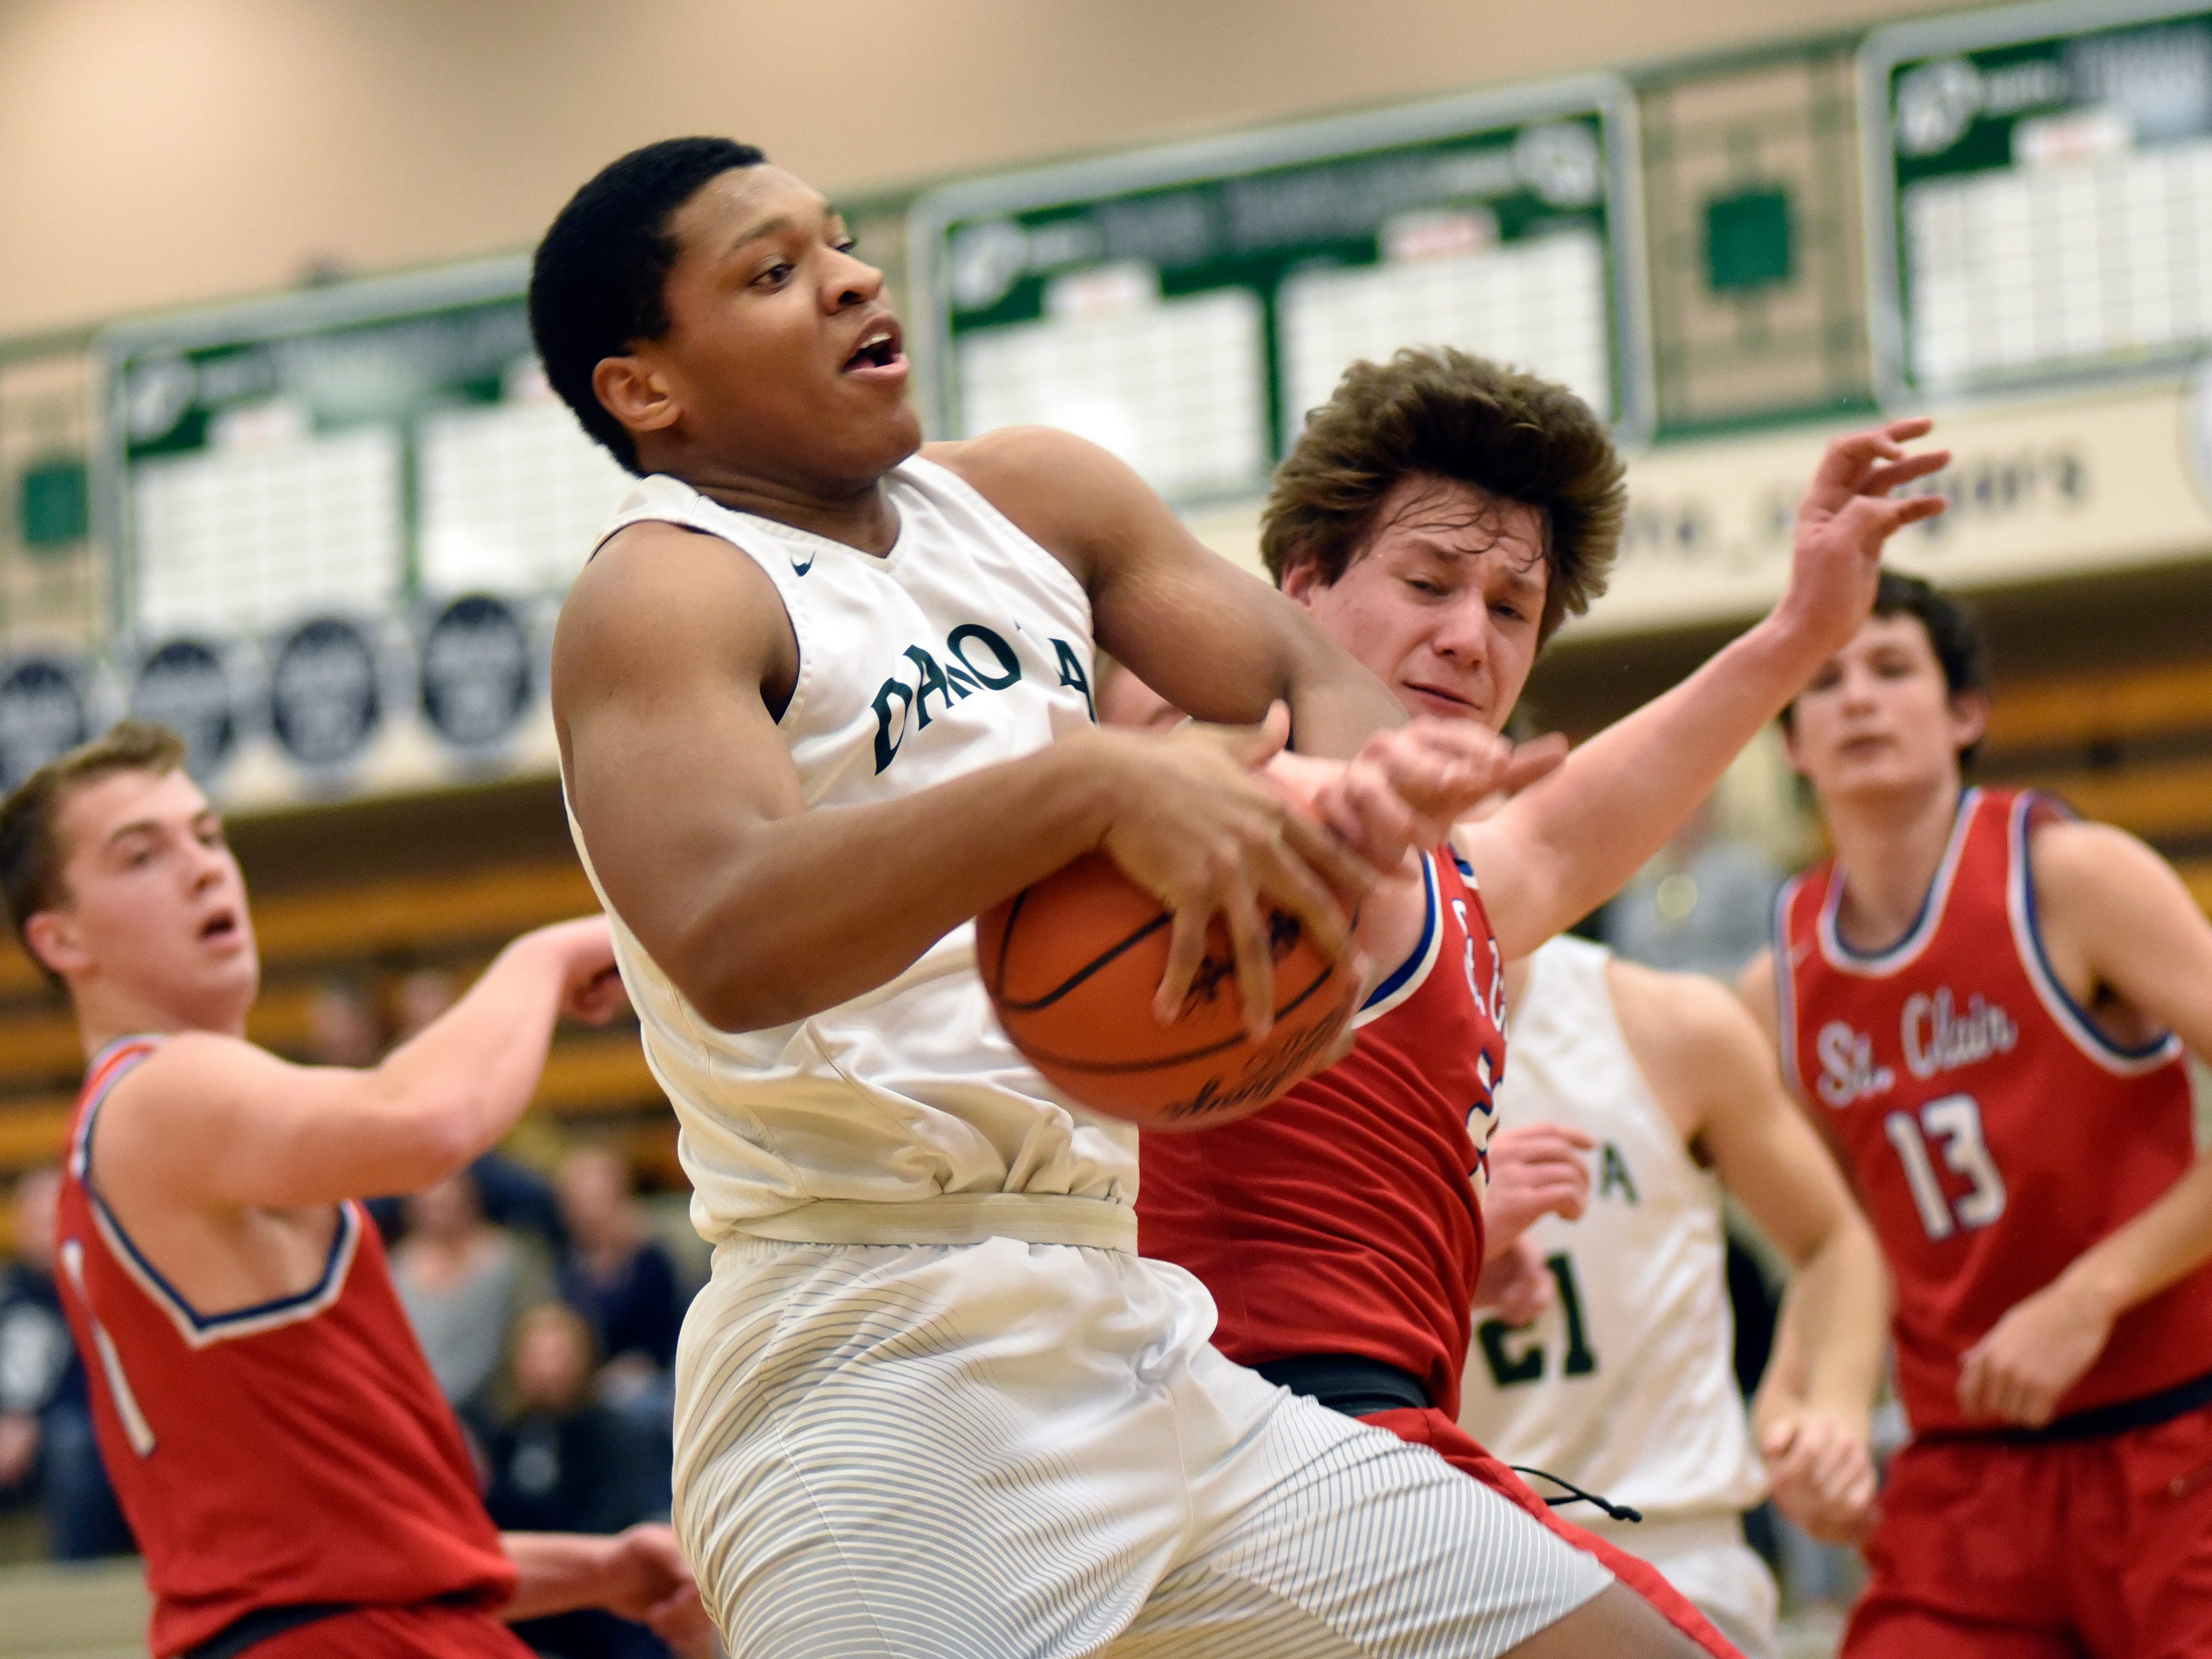 Macomb Dakota forward Jeremiah Major grabs a rebound in front of St Clair's Brady Gleason during the first quarter, at Dakota HS in Macomb Township, Feb. 19, 2019.  Macomb defeated St. Clair 80-57.